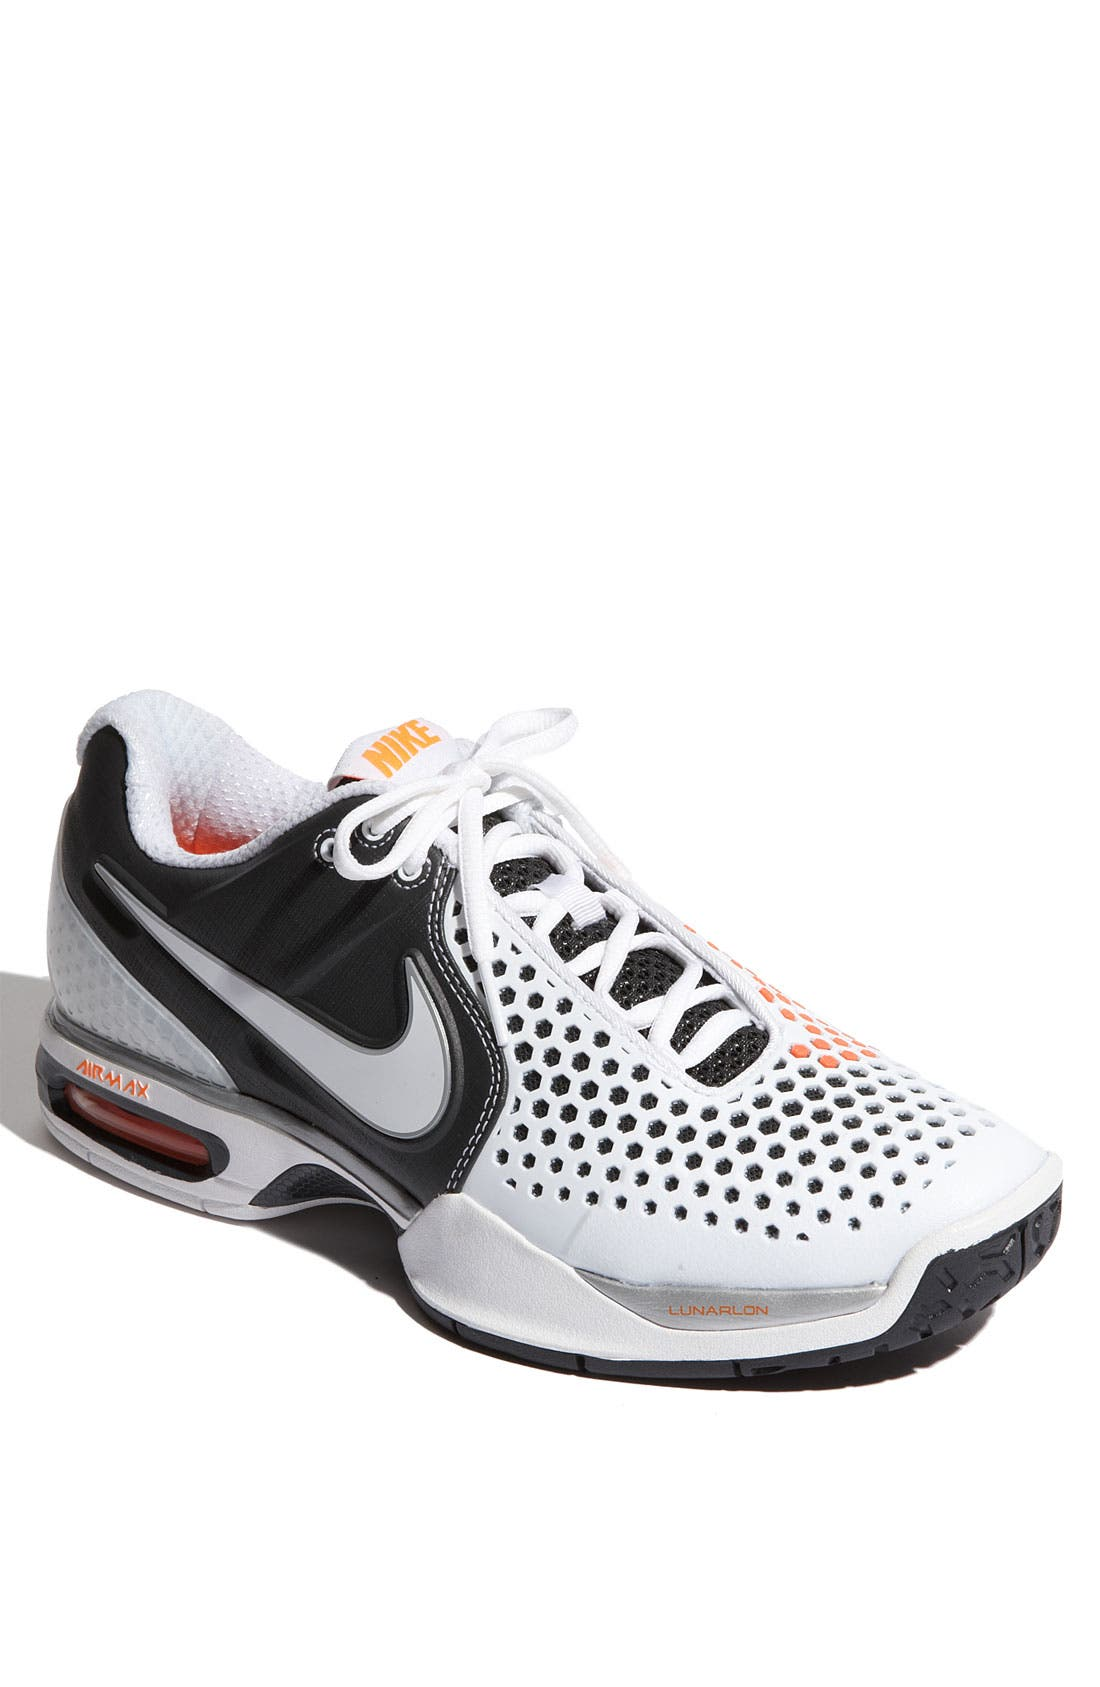 Main Image - Nike 'Air Max Court Ballistic 3.3' Tennis Shoe (Men)